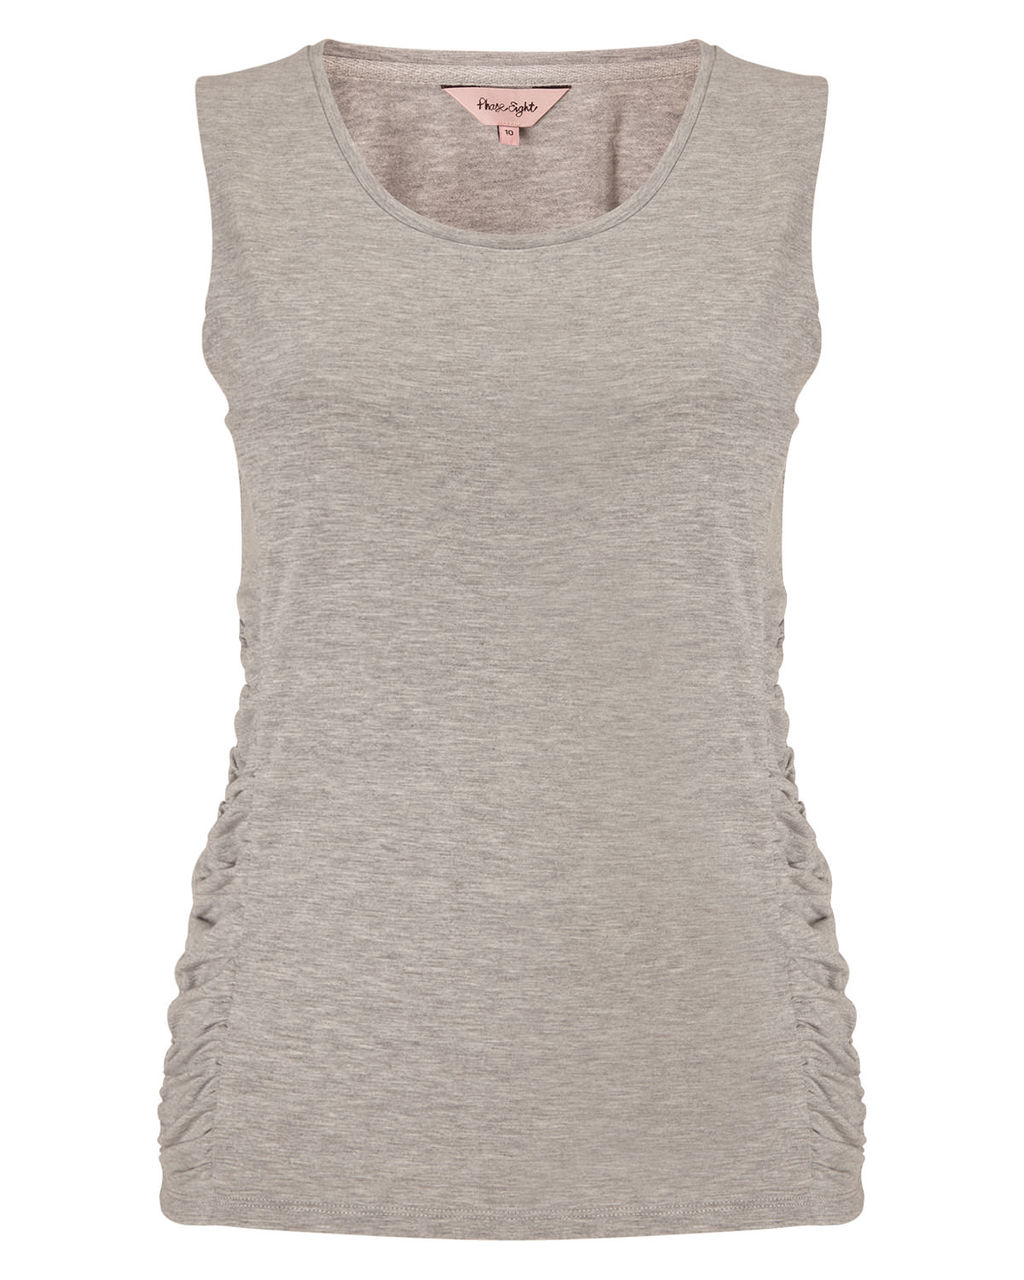 Gigi Gathered Vest - neckline: round neck; sleeve style: standard vest straps/shoulder straps; pattern: plain; length: below the bottom; style: vest top; predominant colour: stone; occasions: casual; fibres: cotton - 100%; fit: body skimming; sleeve length: sleeveless; pattern type: fabric; texture group: jersey - stretchy/drapey; season: a/w 2015; wardrobe: basic